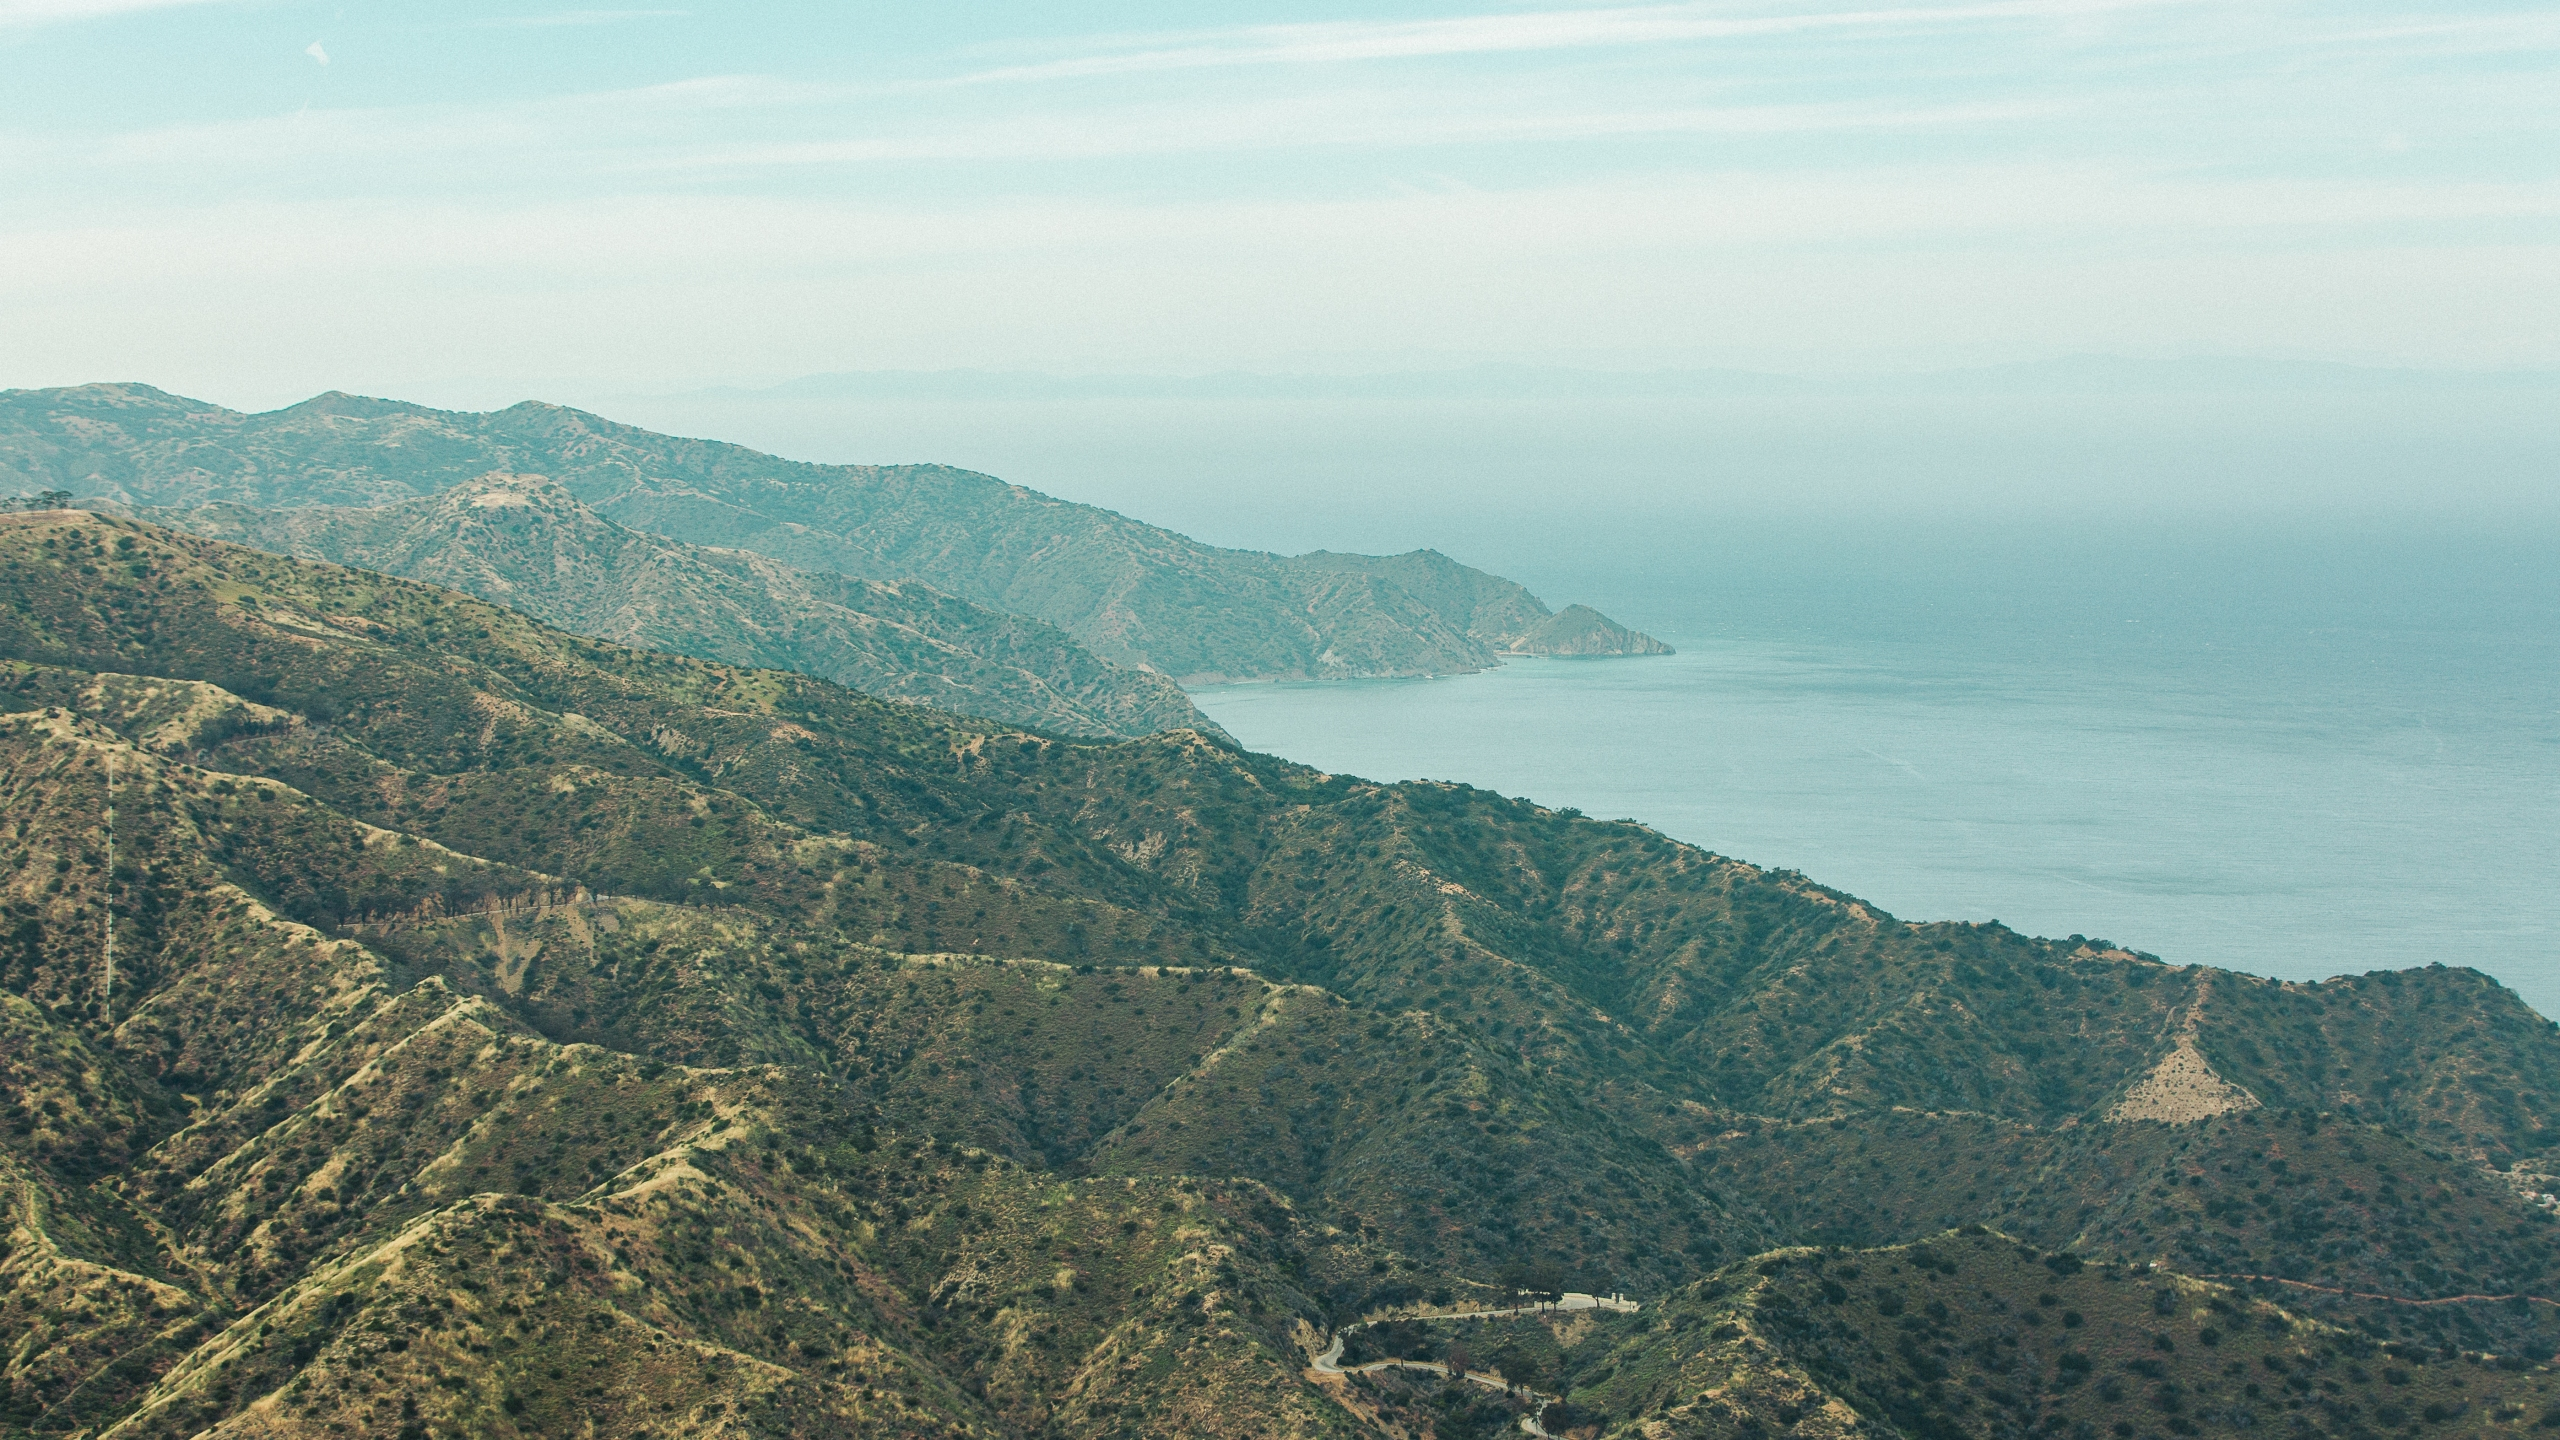 The Catalina Island coastline is seen in a file photo. (Credit: iStock / Getty Images Plus)